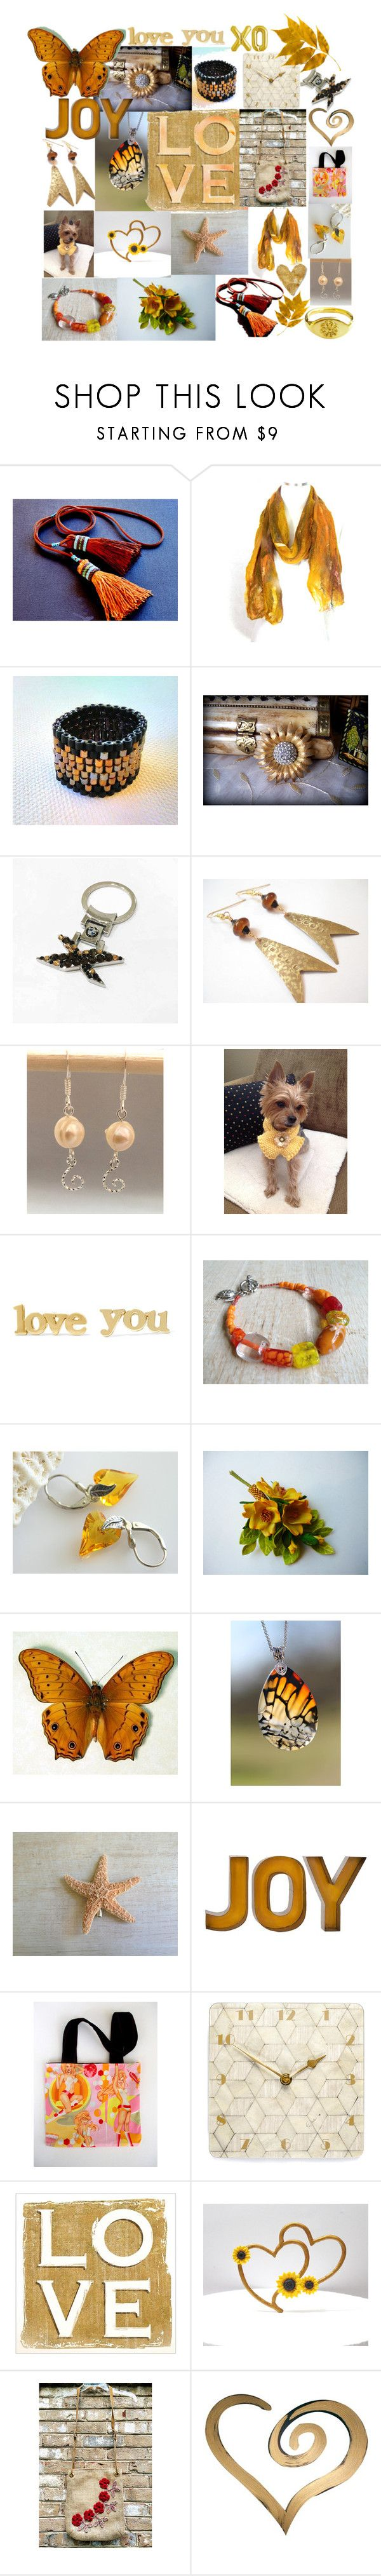 """""""Love You"""" by monique-eves ❤ liked on Polyvore featuring interior, interiors, interior design, home, home decor, interior decorating, BMW, Jennifer Meyer Jewelry, Letter2Word and xO Design"""